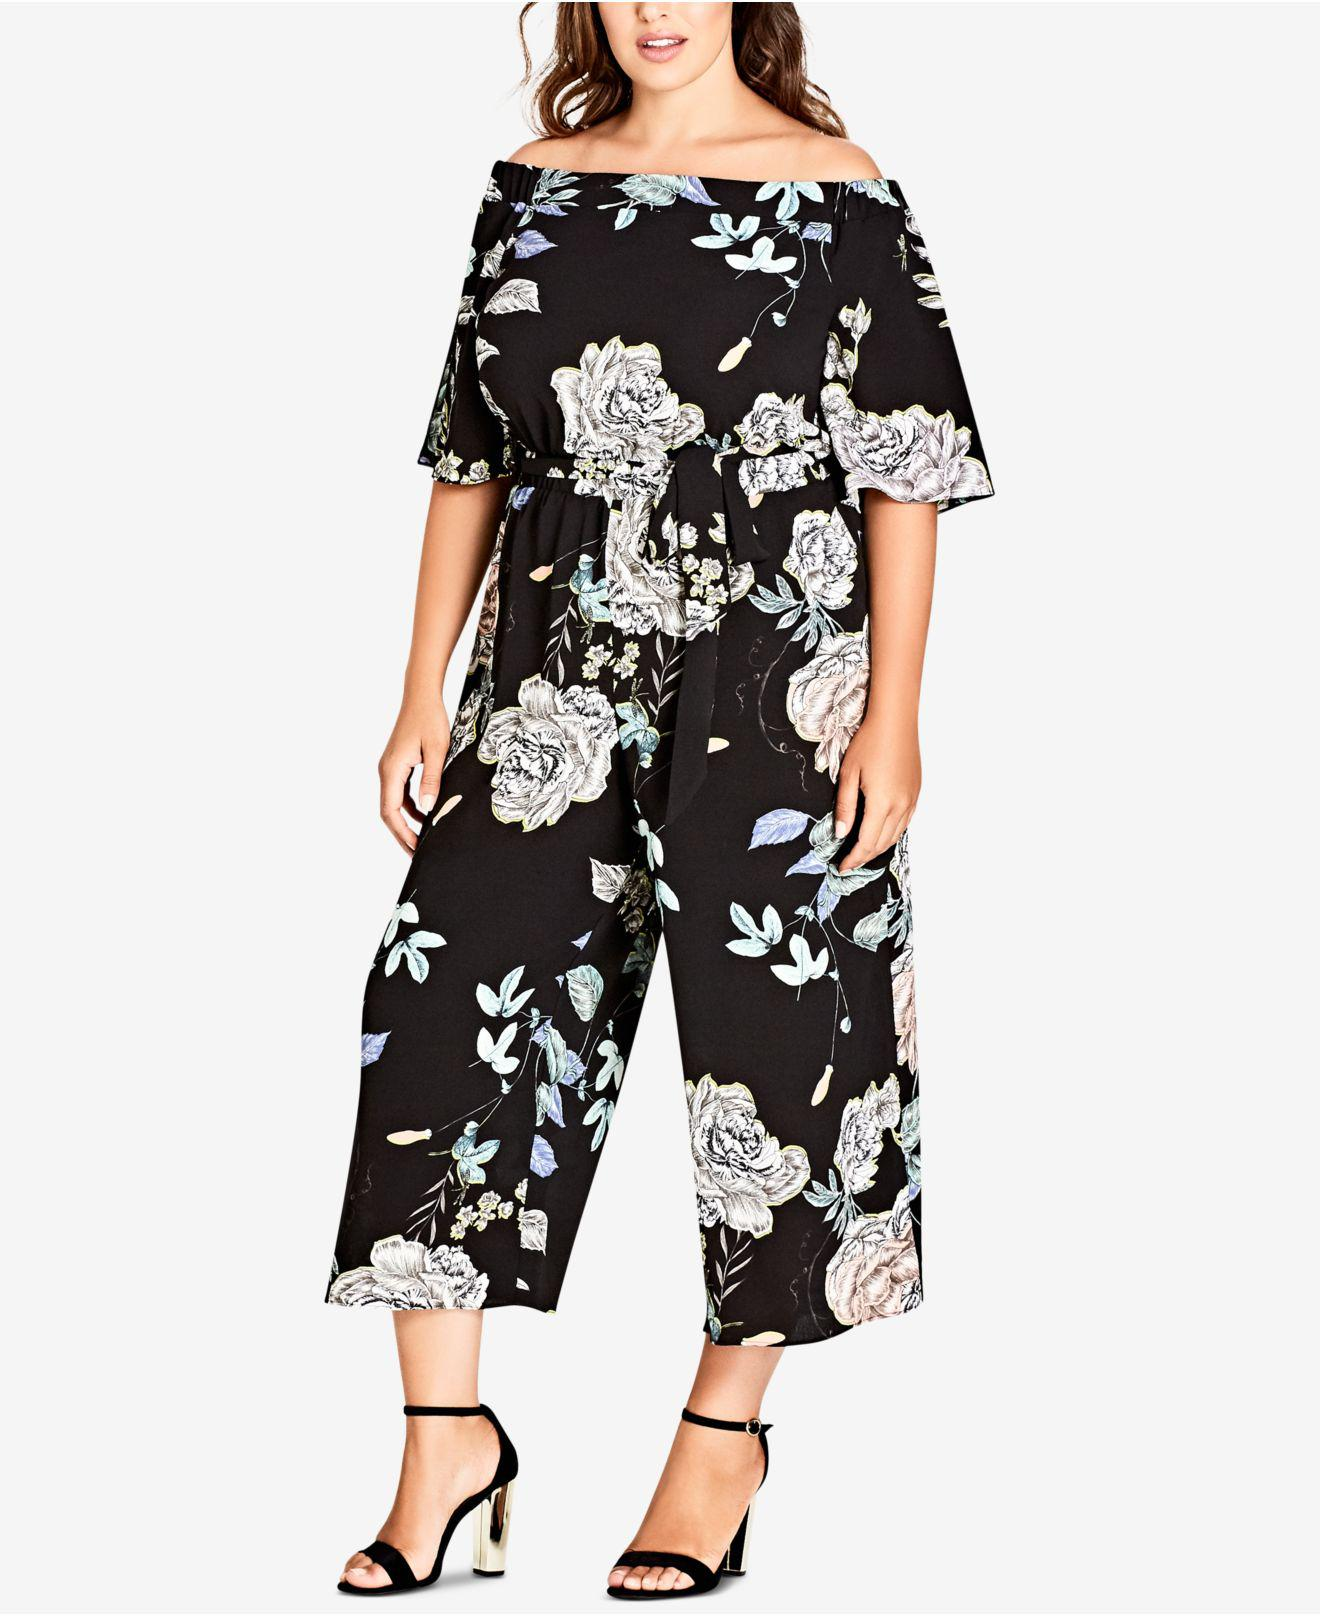 56a193f6eaa7 Lyst - City Chic Flower Show Off The Shoulder Jumpsuit in Black ...